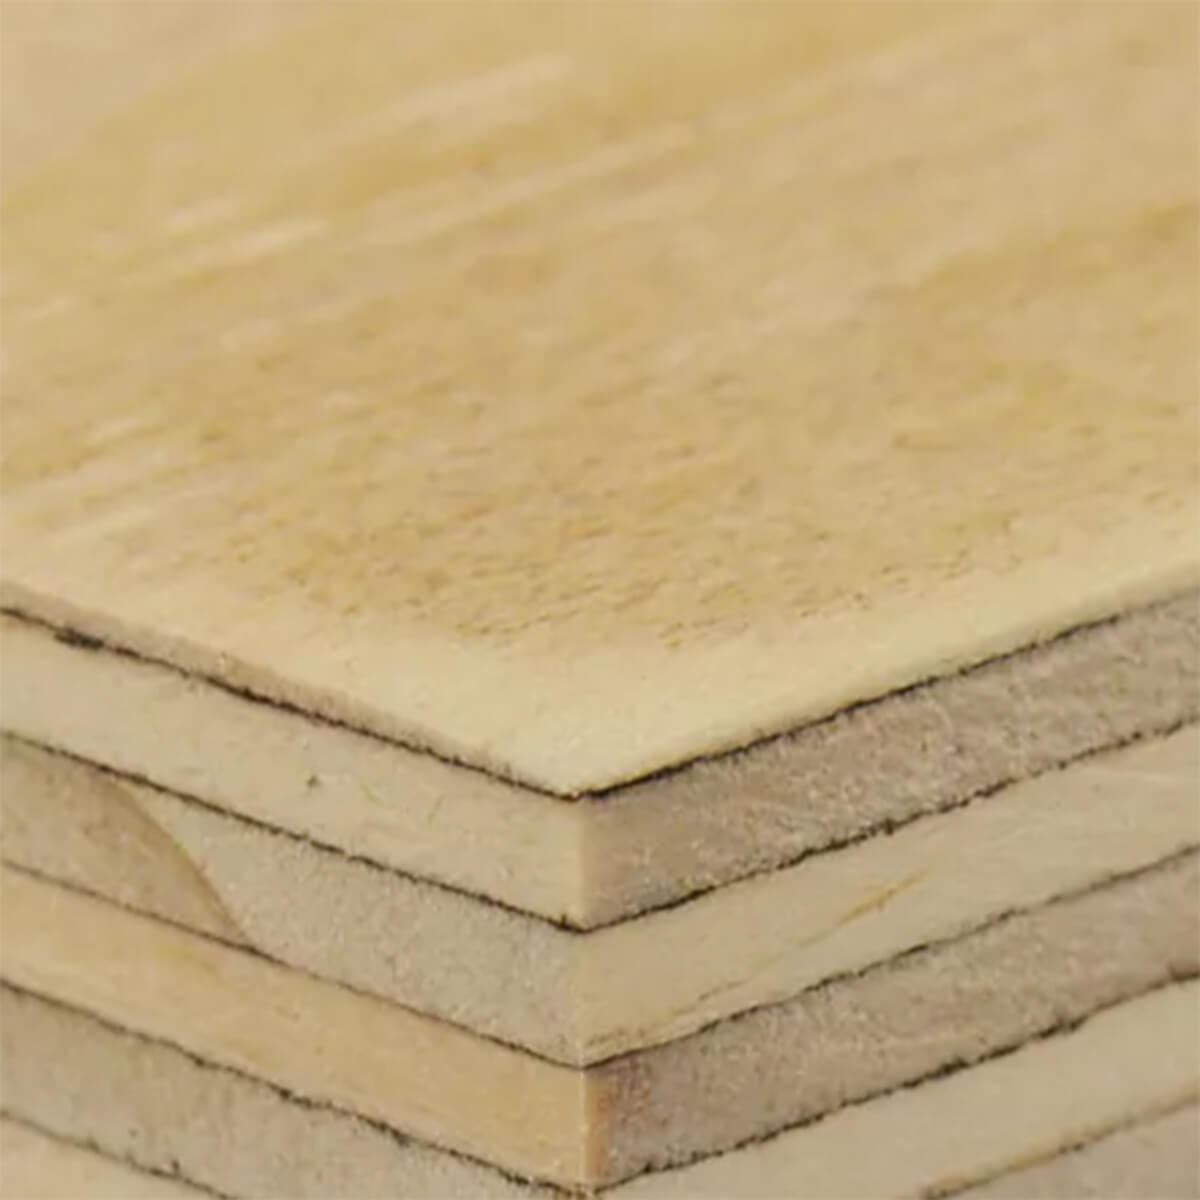 Sanded Fir G1S Plywood - 4 X 8 - 23/32 in